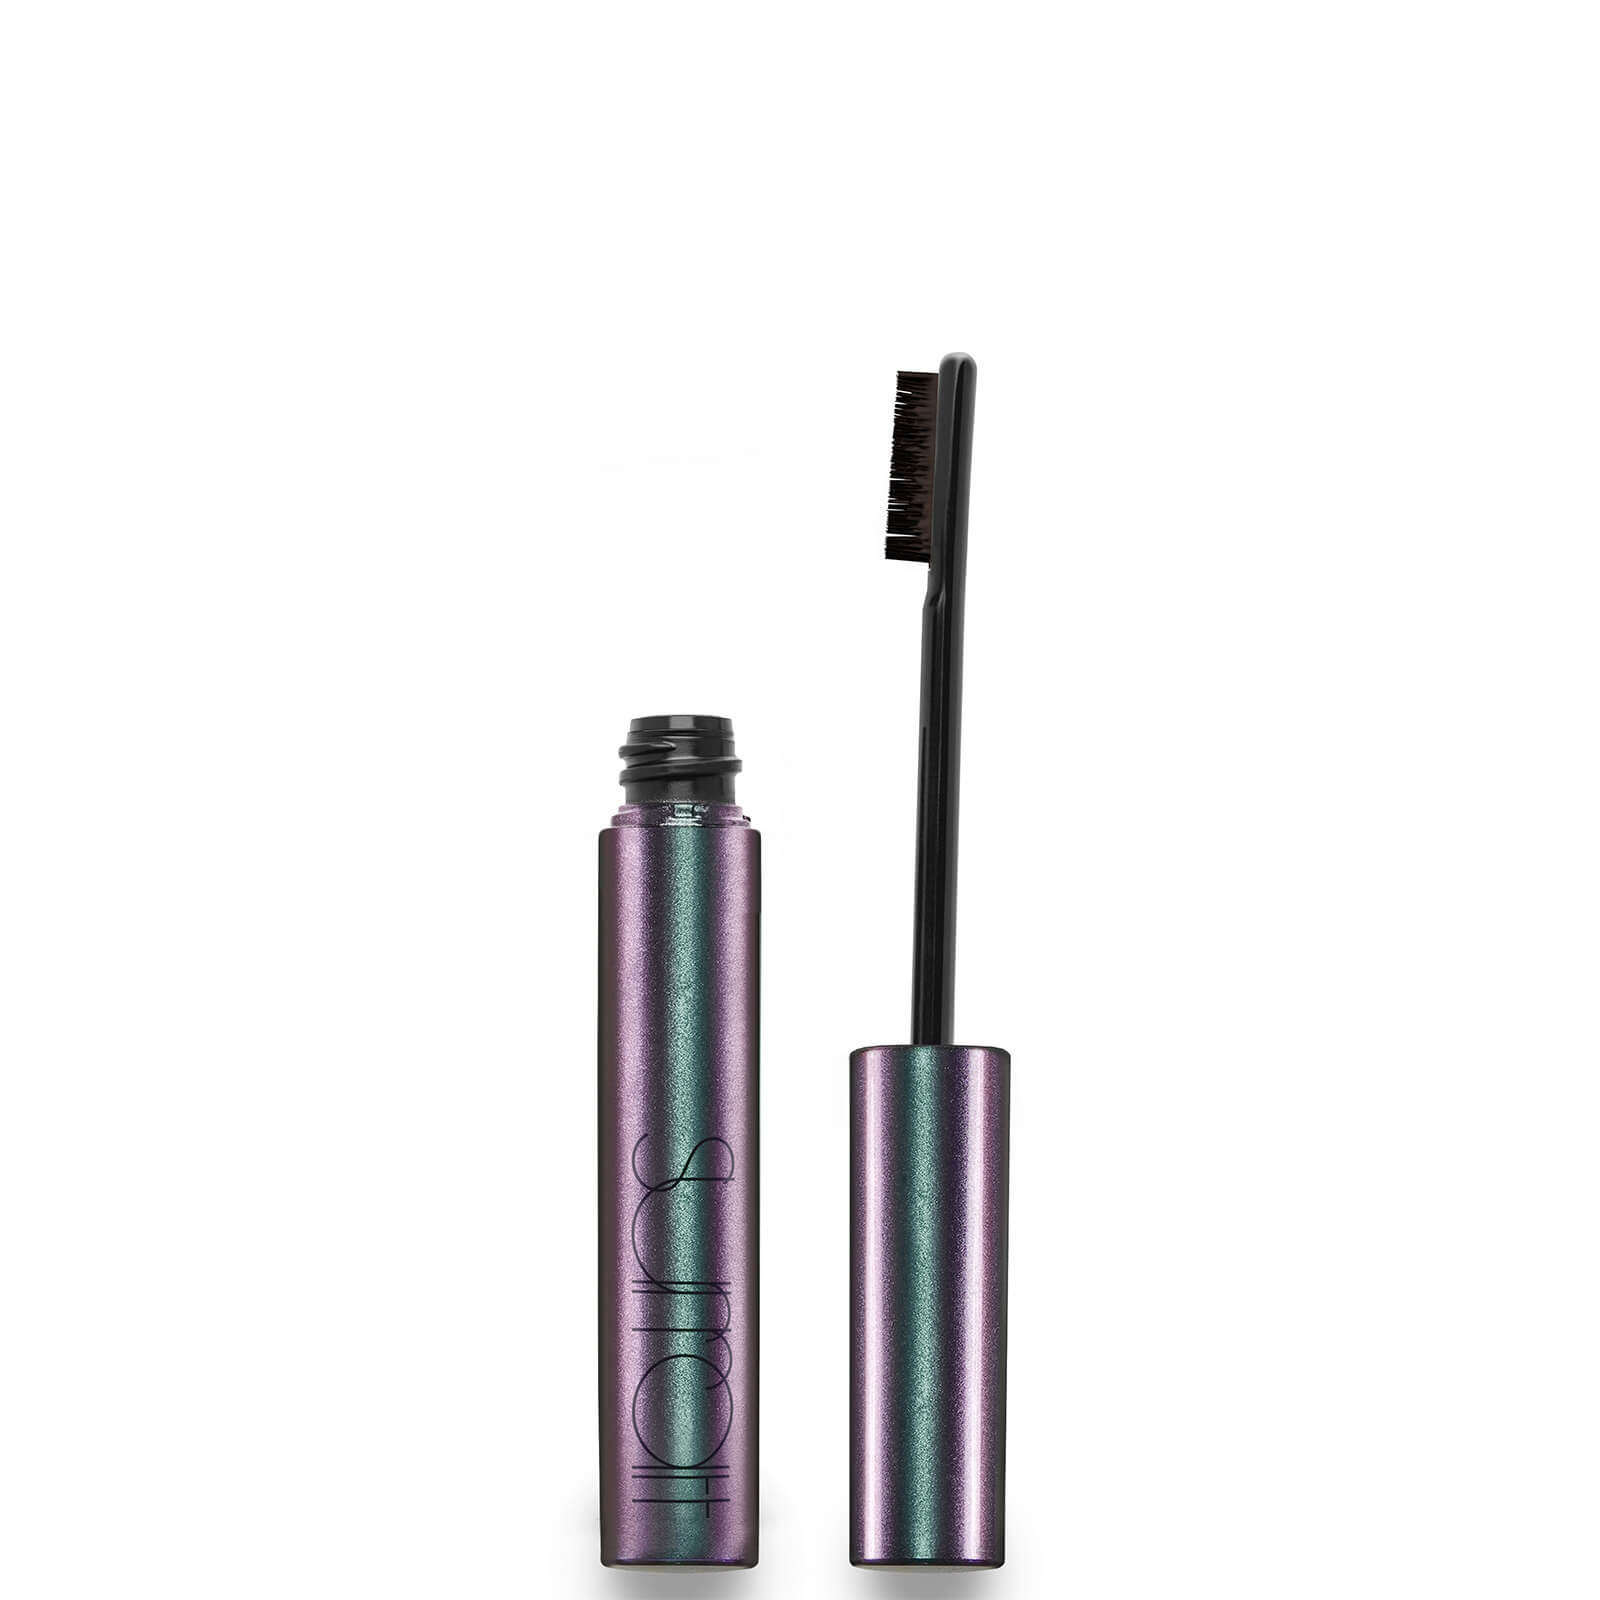 Surratt Expressioniste Brow Pomade 5ml (Various Shades) - Deep Brown